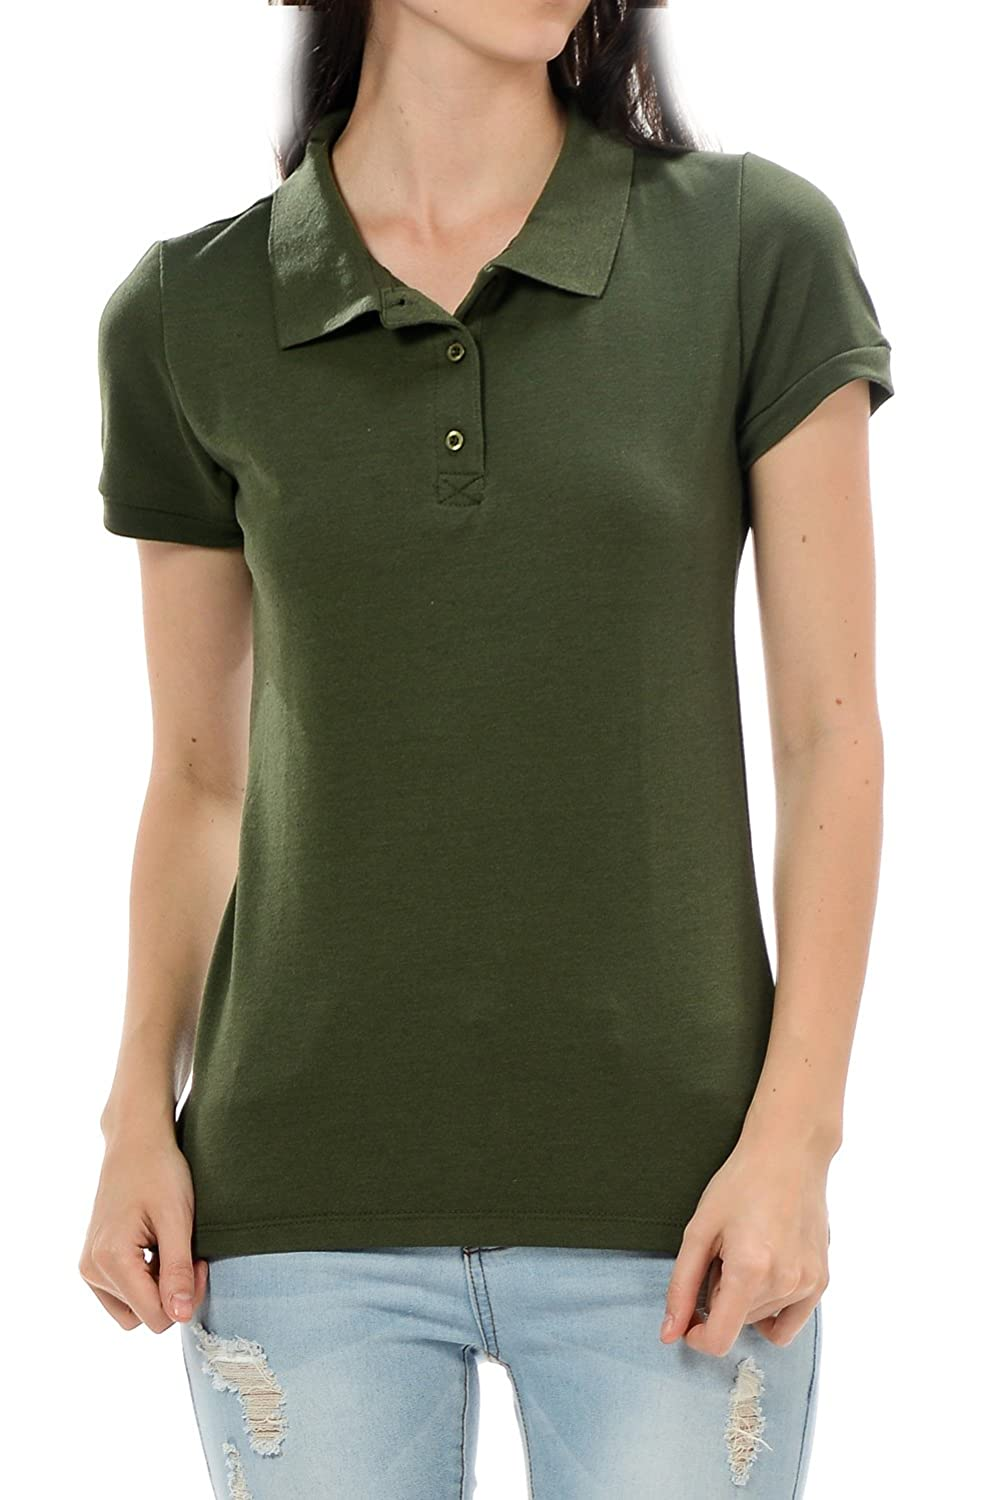 YourStyle Classic Stretch Pique Polo Shirts- Various Colors